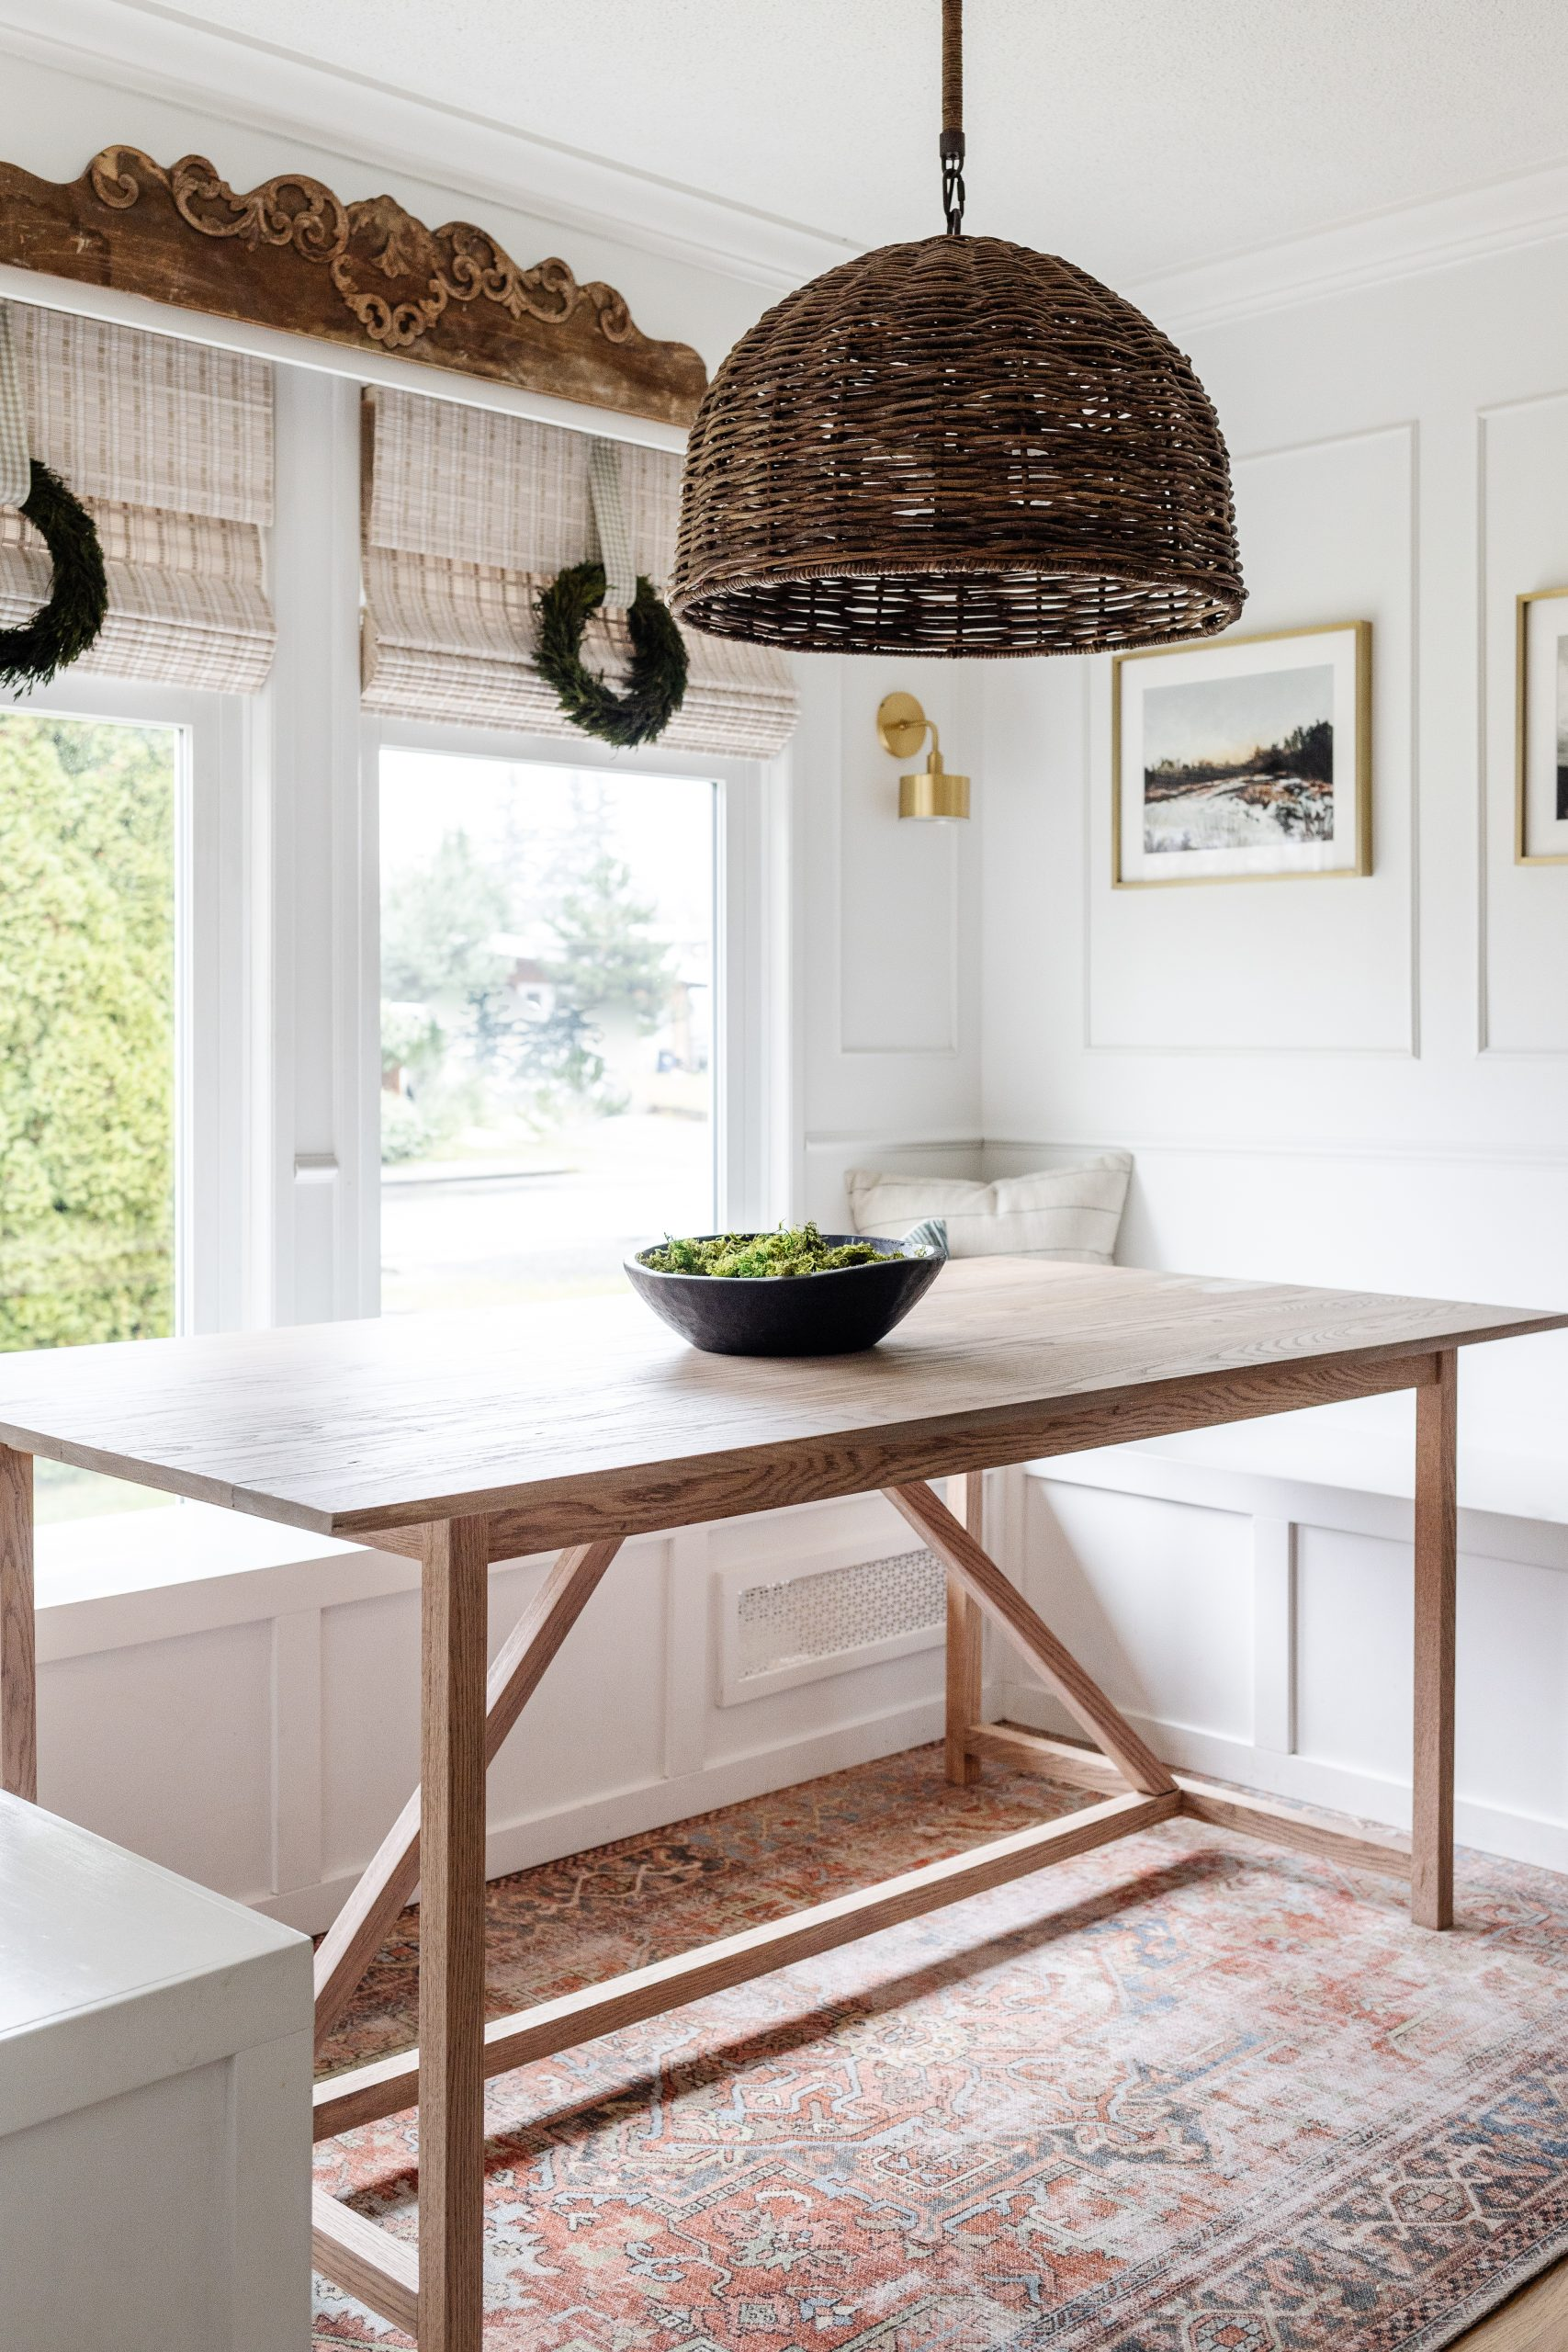 How To Build A Modern Oak Dining Table. Step by step directions as well as a shop list. We partnered with Home Depot Canada to build our dream table!